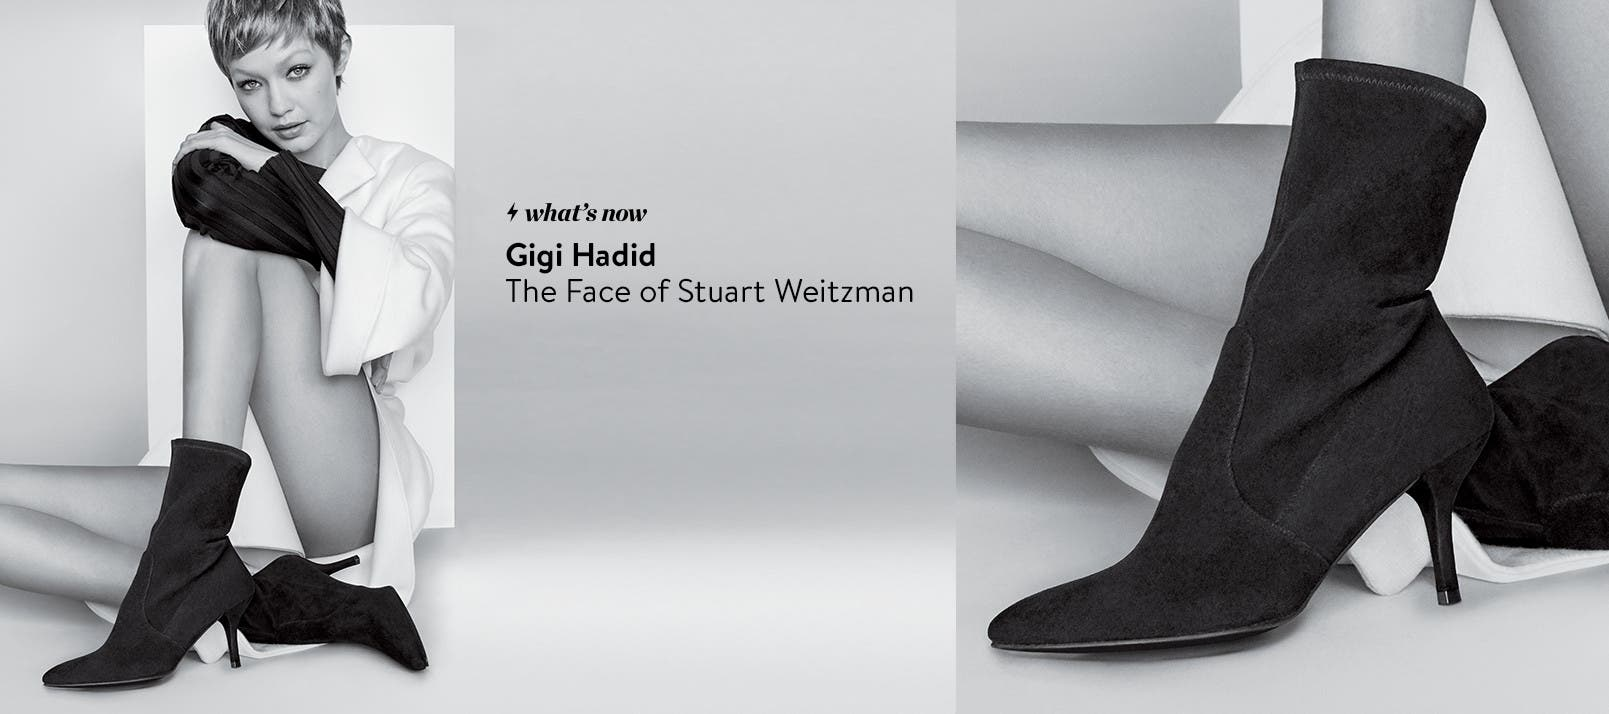 Gigi Hadid: the face of Stuart Weitzman's fall shoe collection.